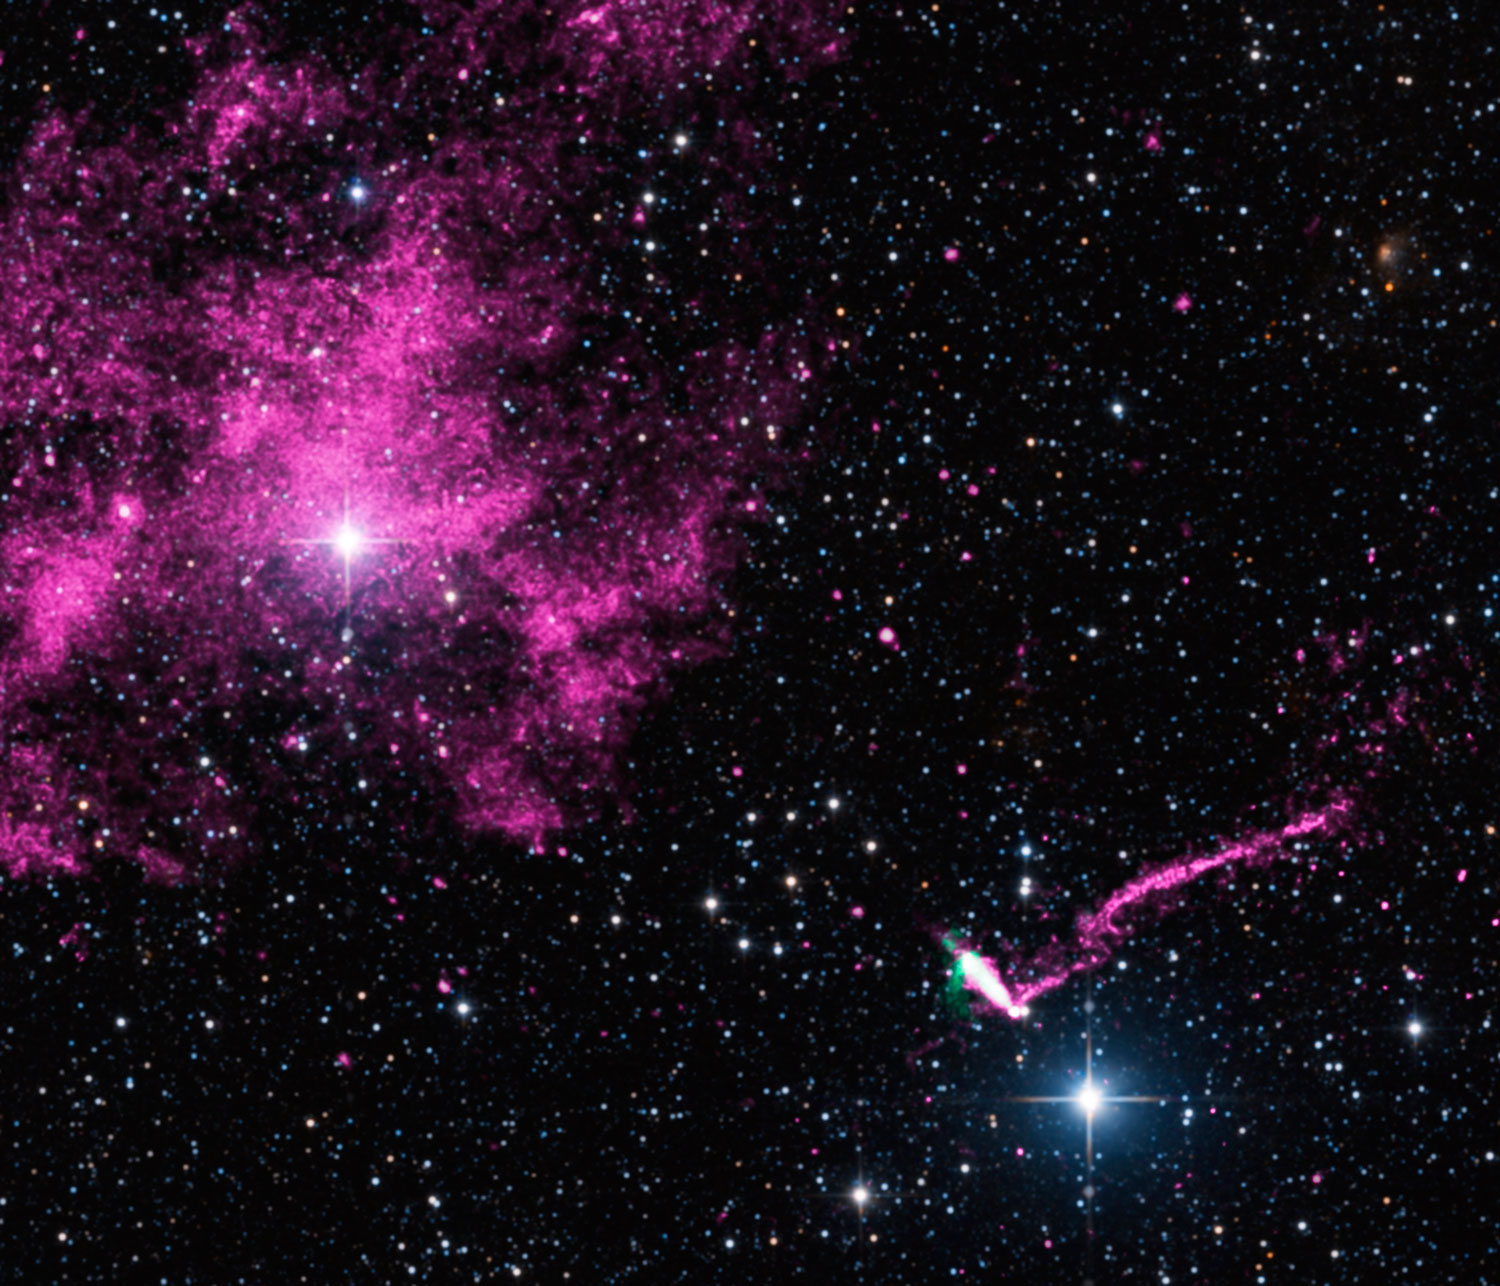 An extraordinary jet trails behind a runaway pulsar in a composite image from NASA's Chandra X-ray Observatory (purple) and the Australia Compact Telescope Array (green). The pulsar and its tail, in the lower right of this image, stretches for 37 light years, making it the longest jet ever seen from the Milky Way galaxy.